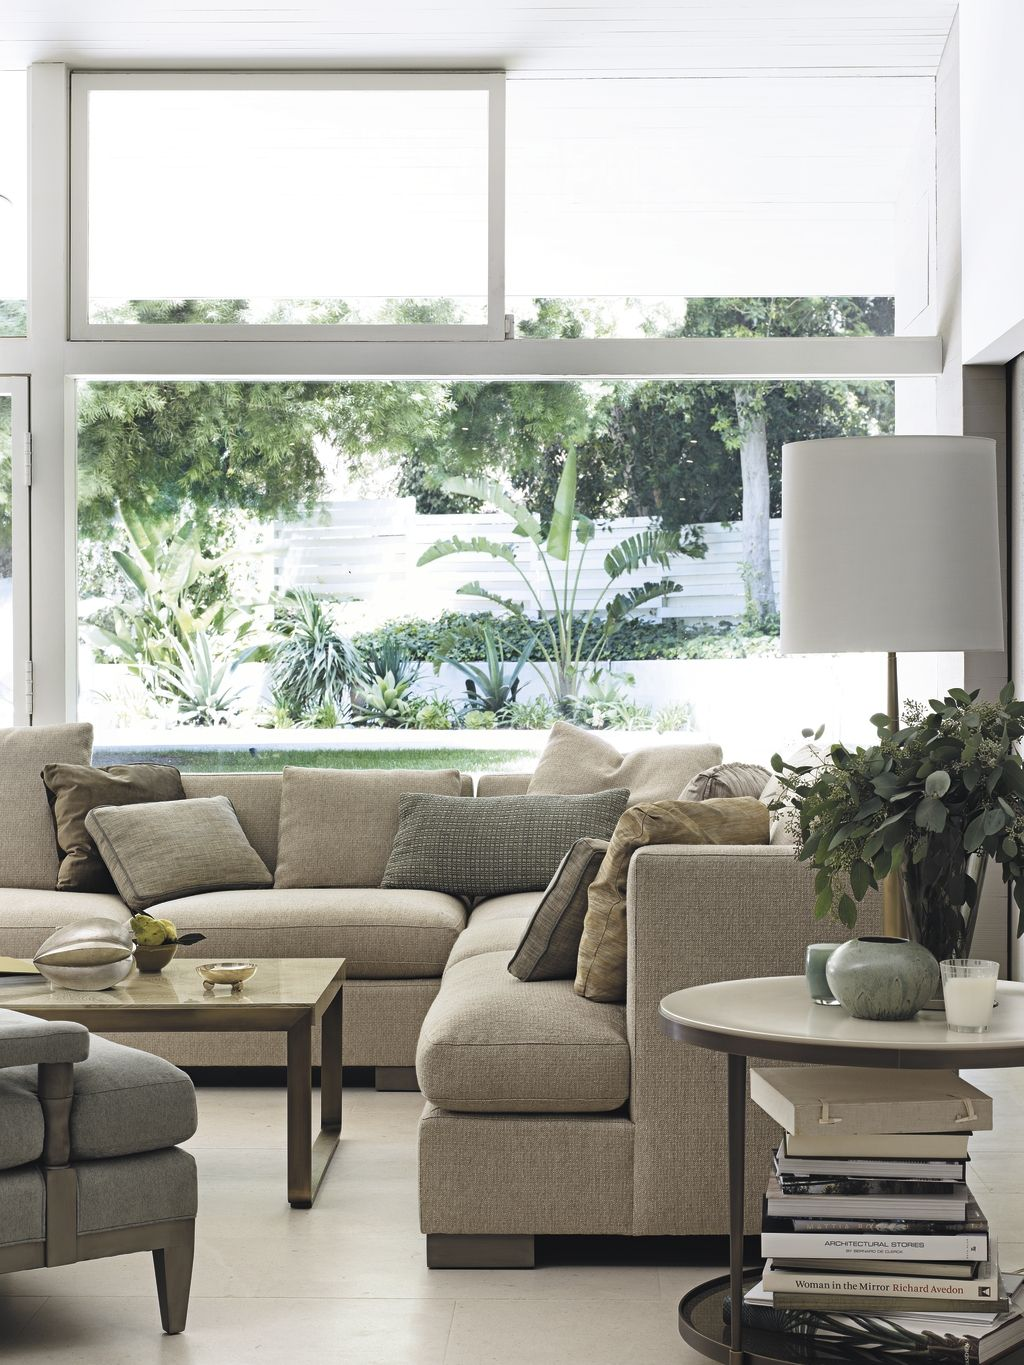 social scene sectional the barbara barry collection. Black Bedroom Furniture Sets. Home Design Ideas